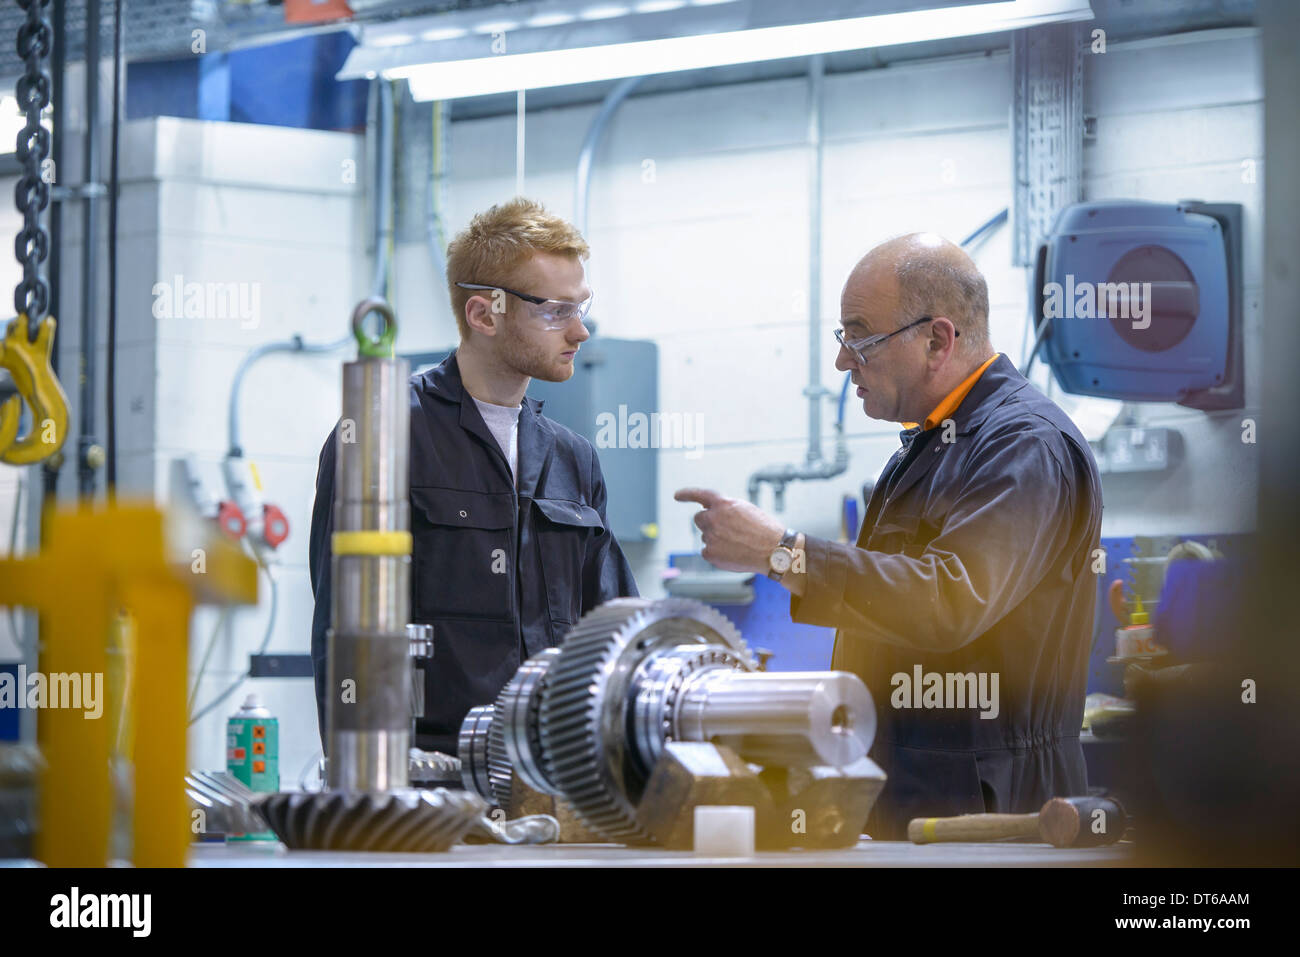 Engineer instructing apprentice at workstation in factory - Stock Image